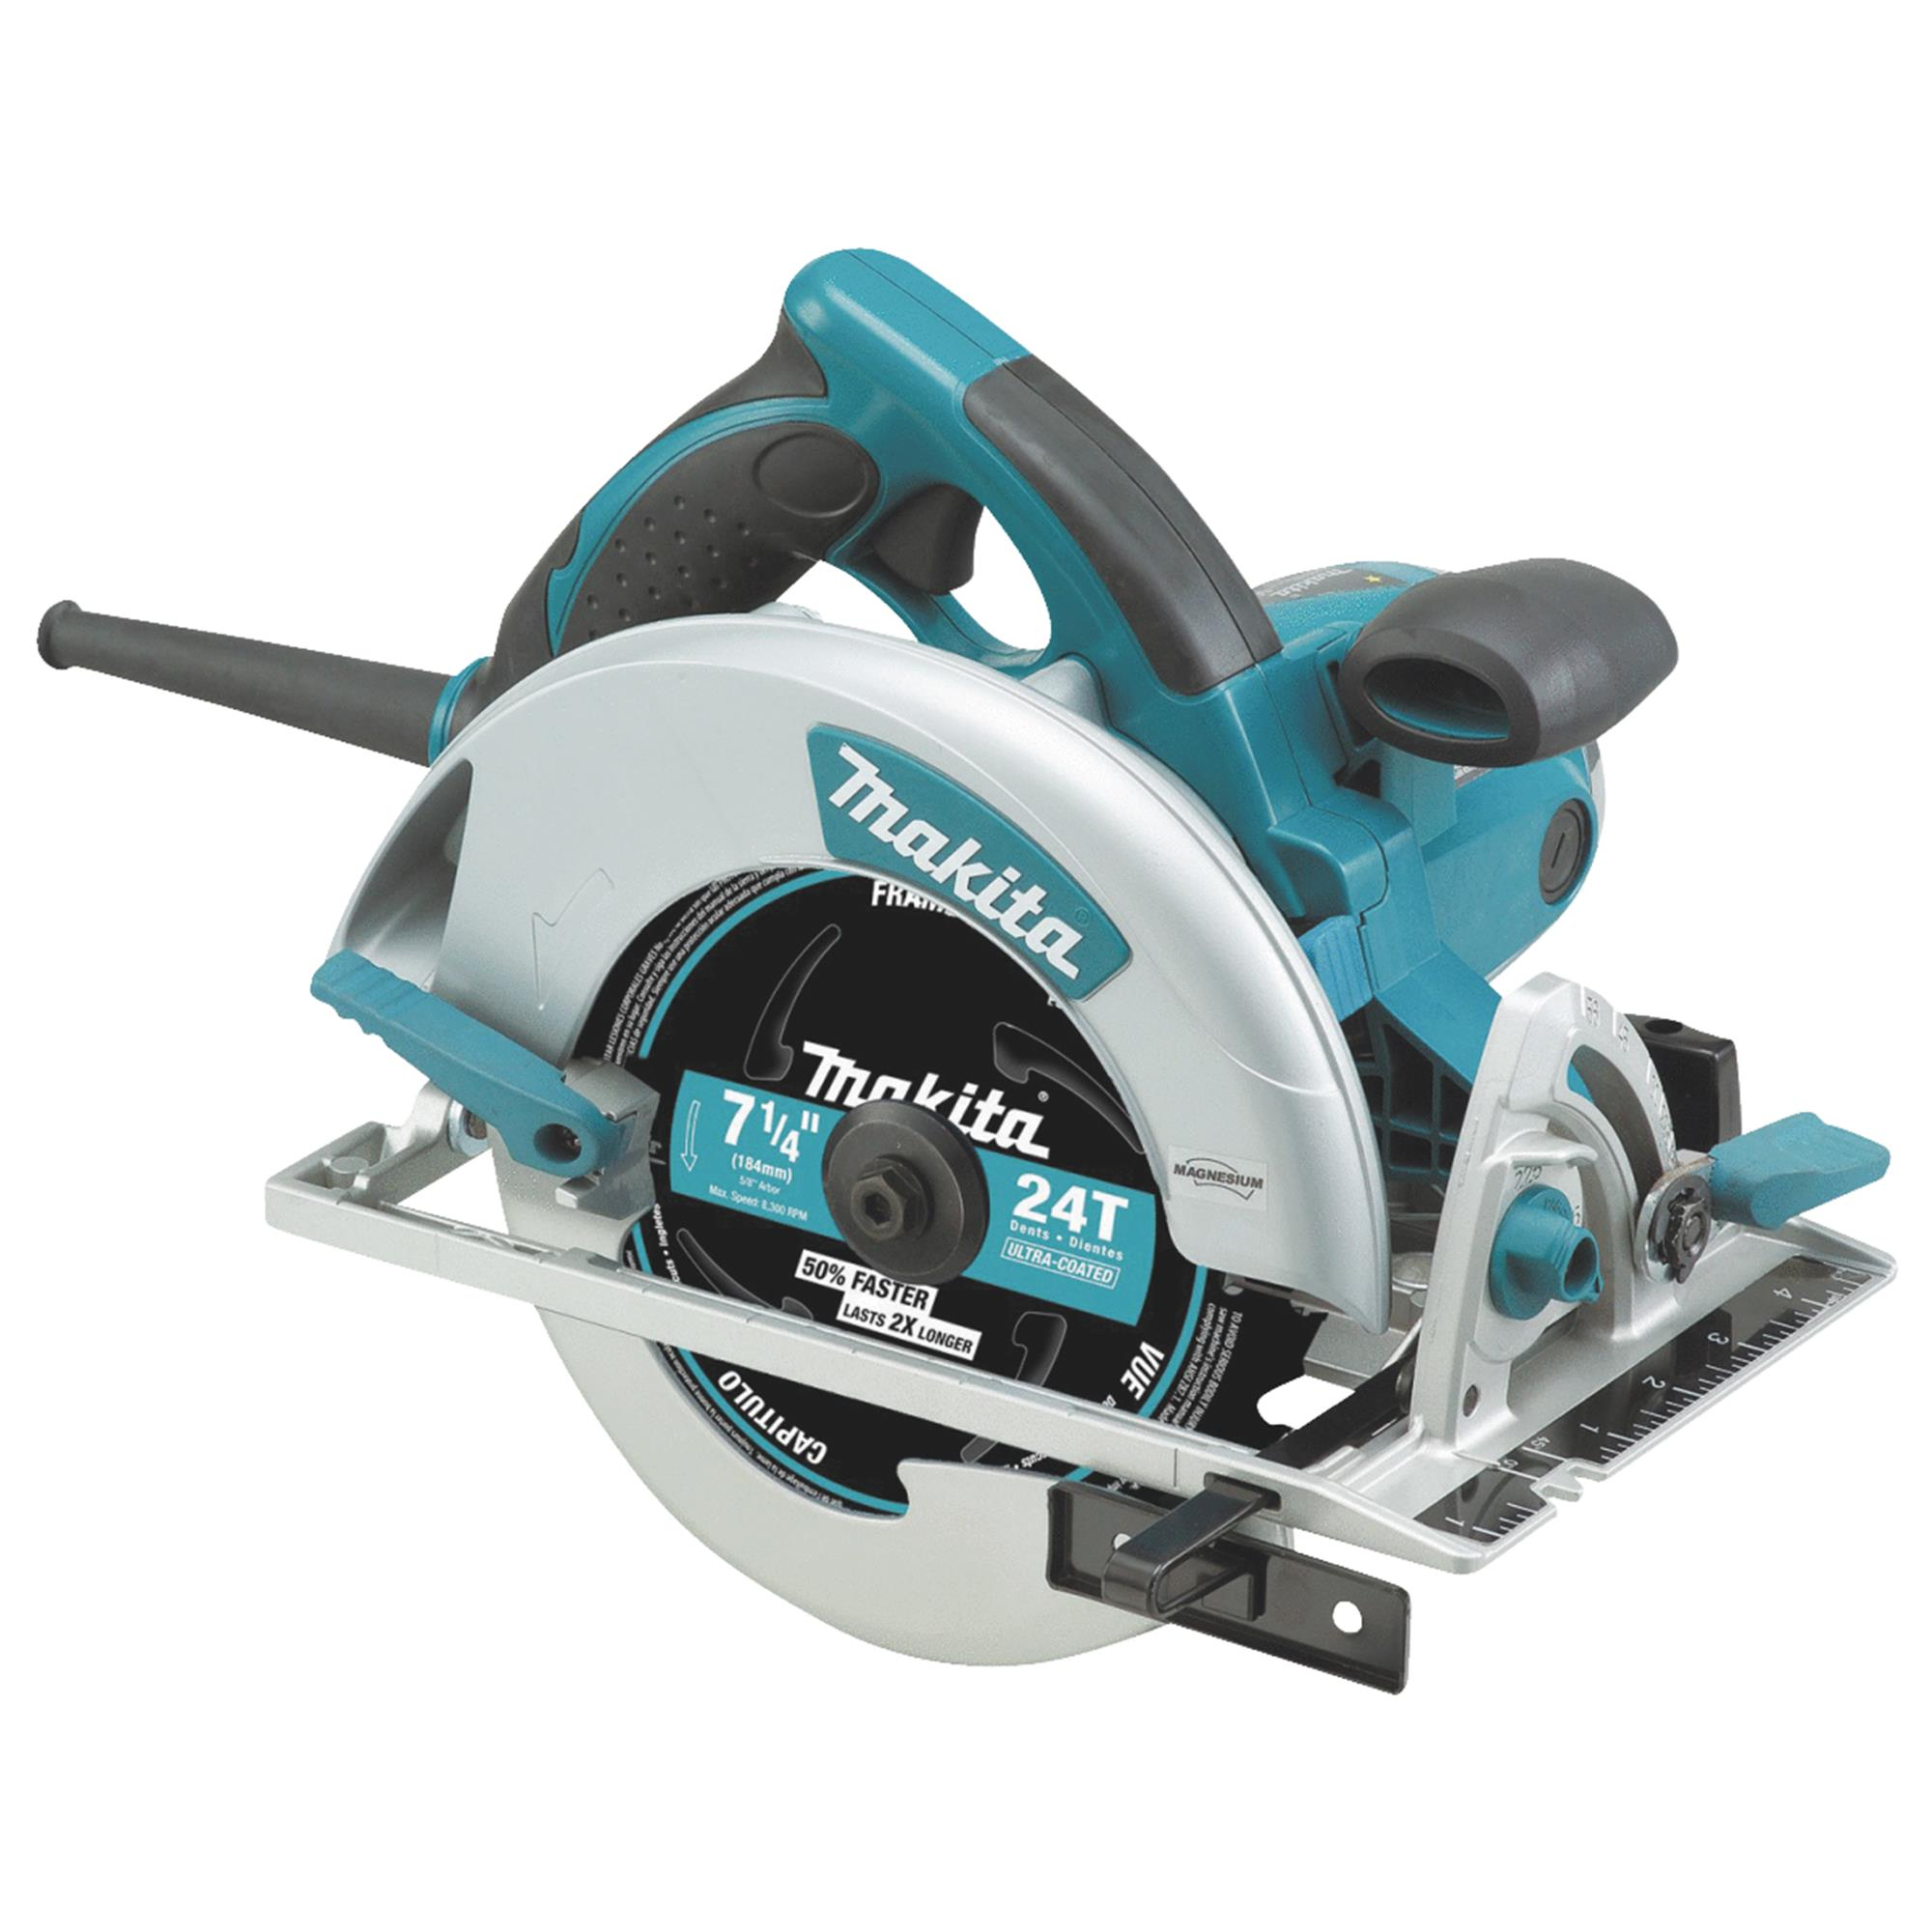 Makita 7-1/4 In. Magnesium Circular Saw